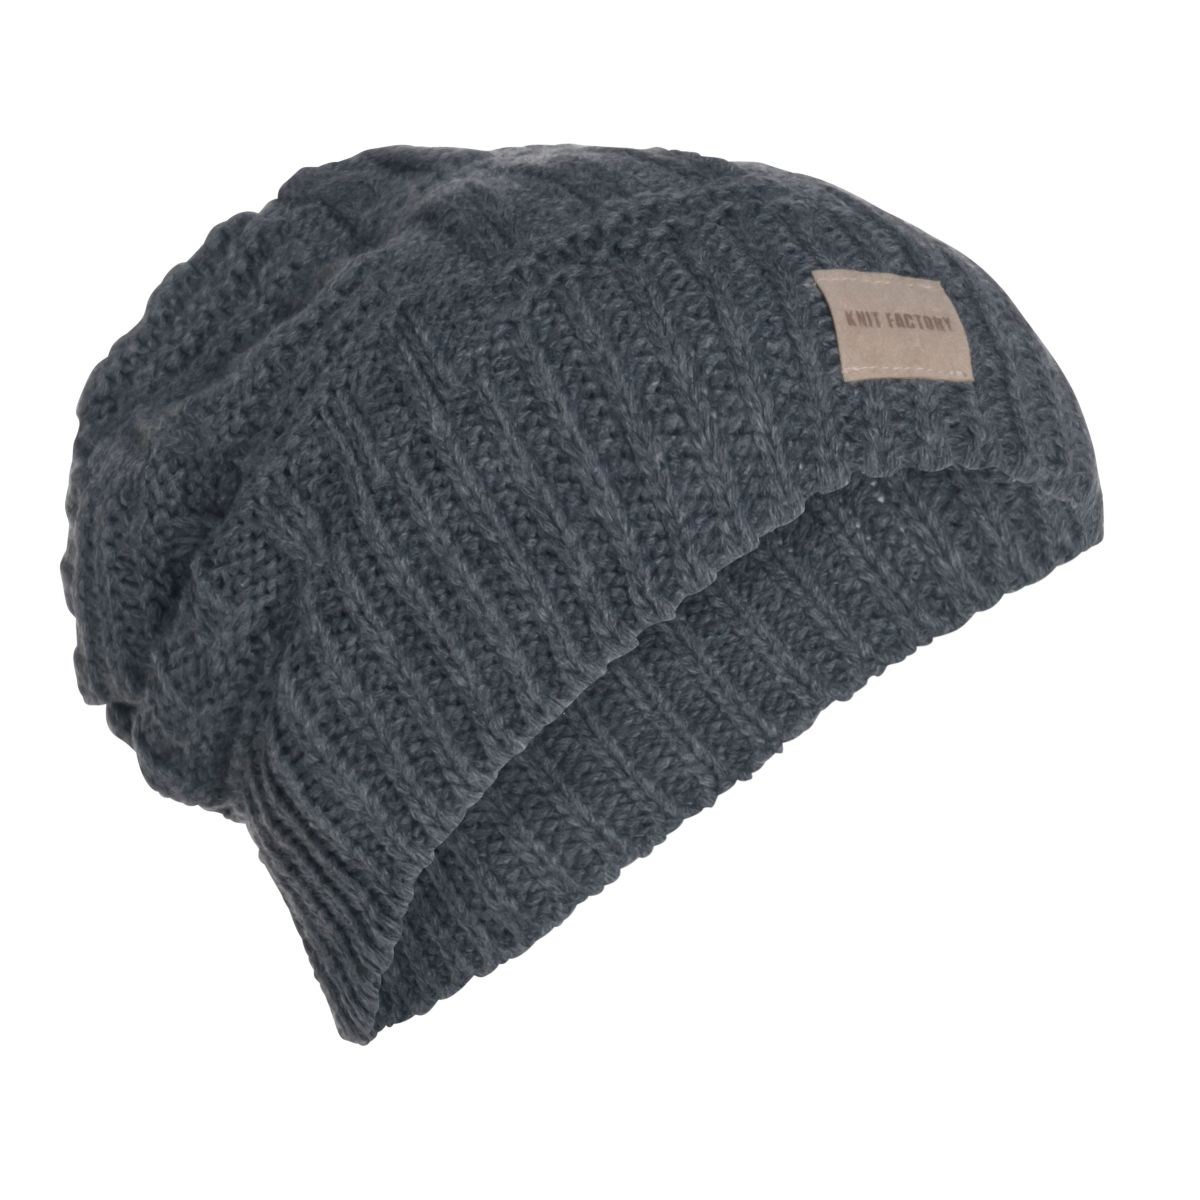 knit factory kf14407001050 bobby muts antraciet 1